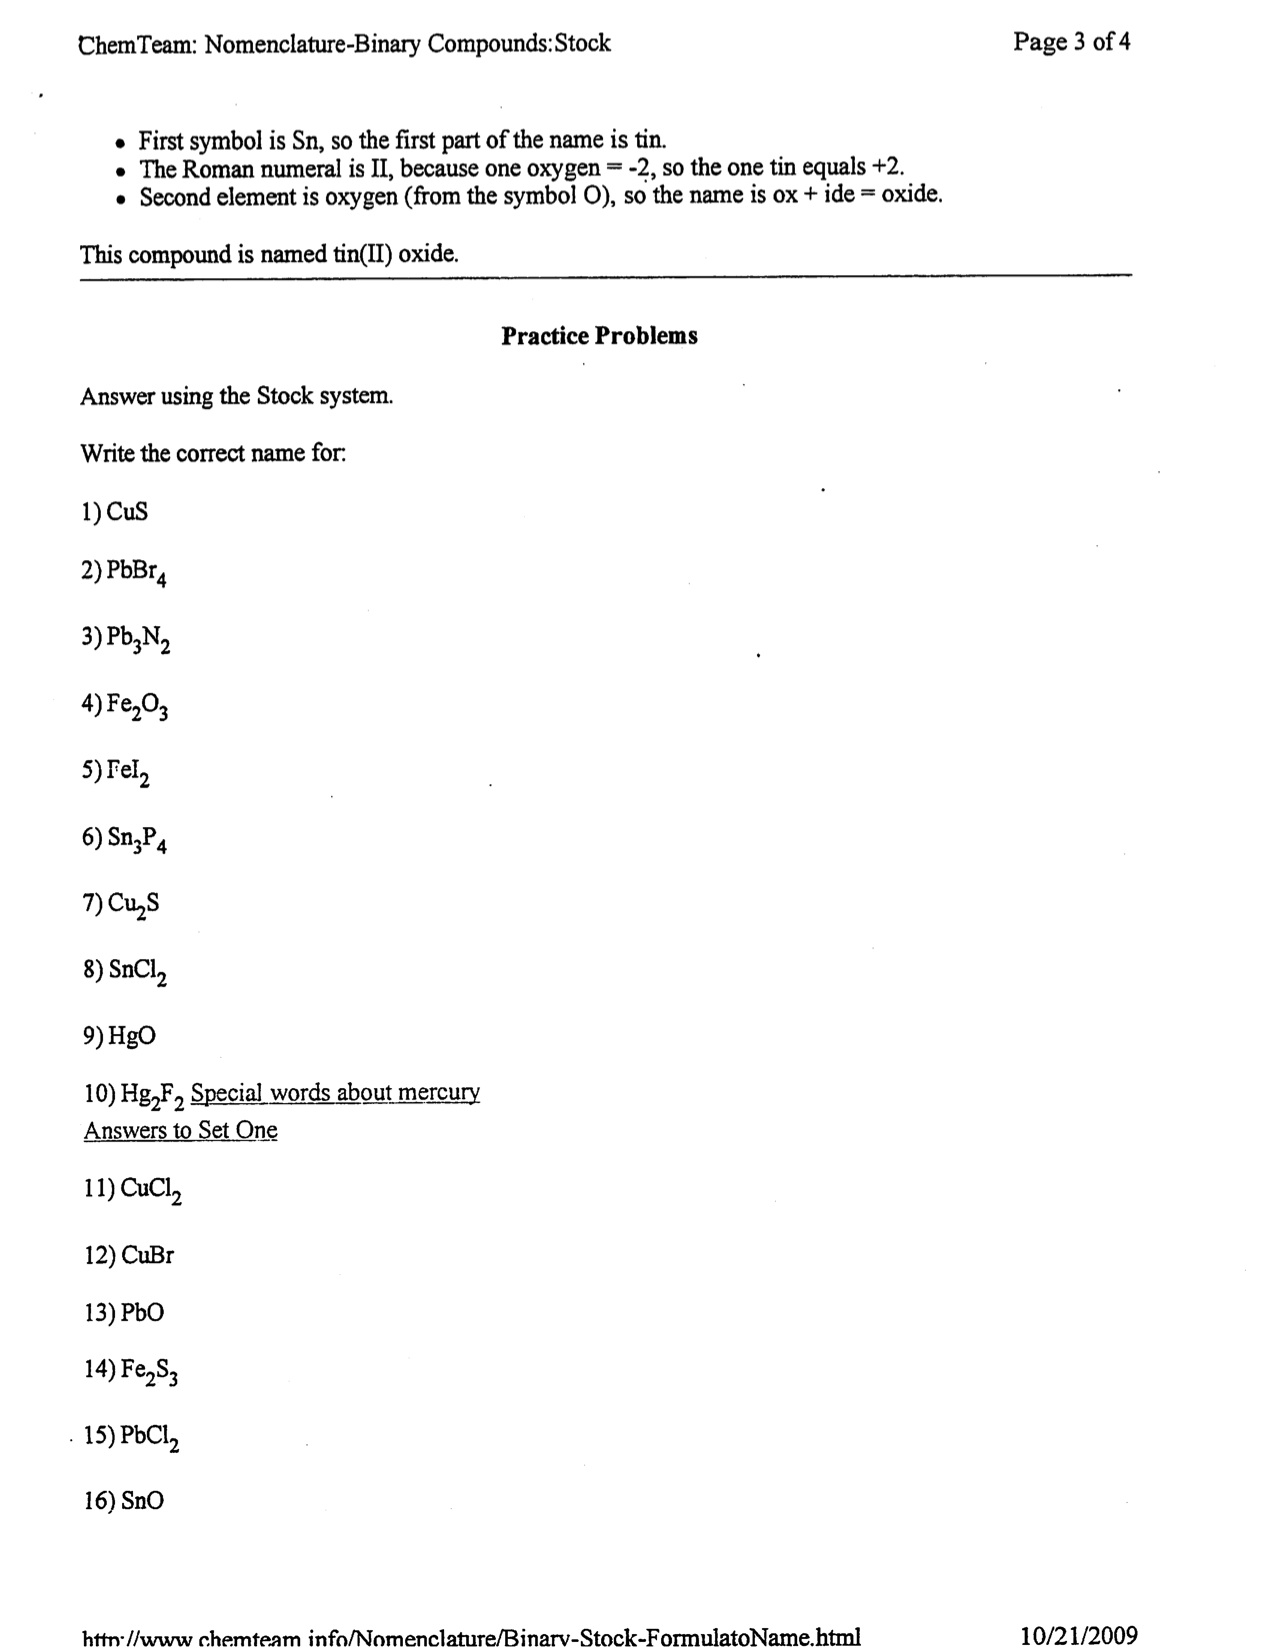 Chemical Formulas And Nomenclature Worksheet Answers